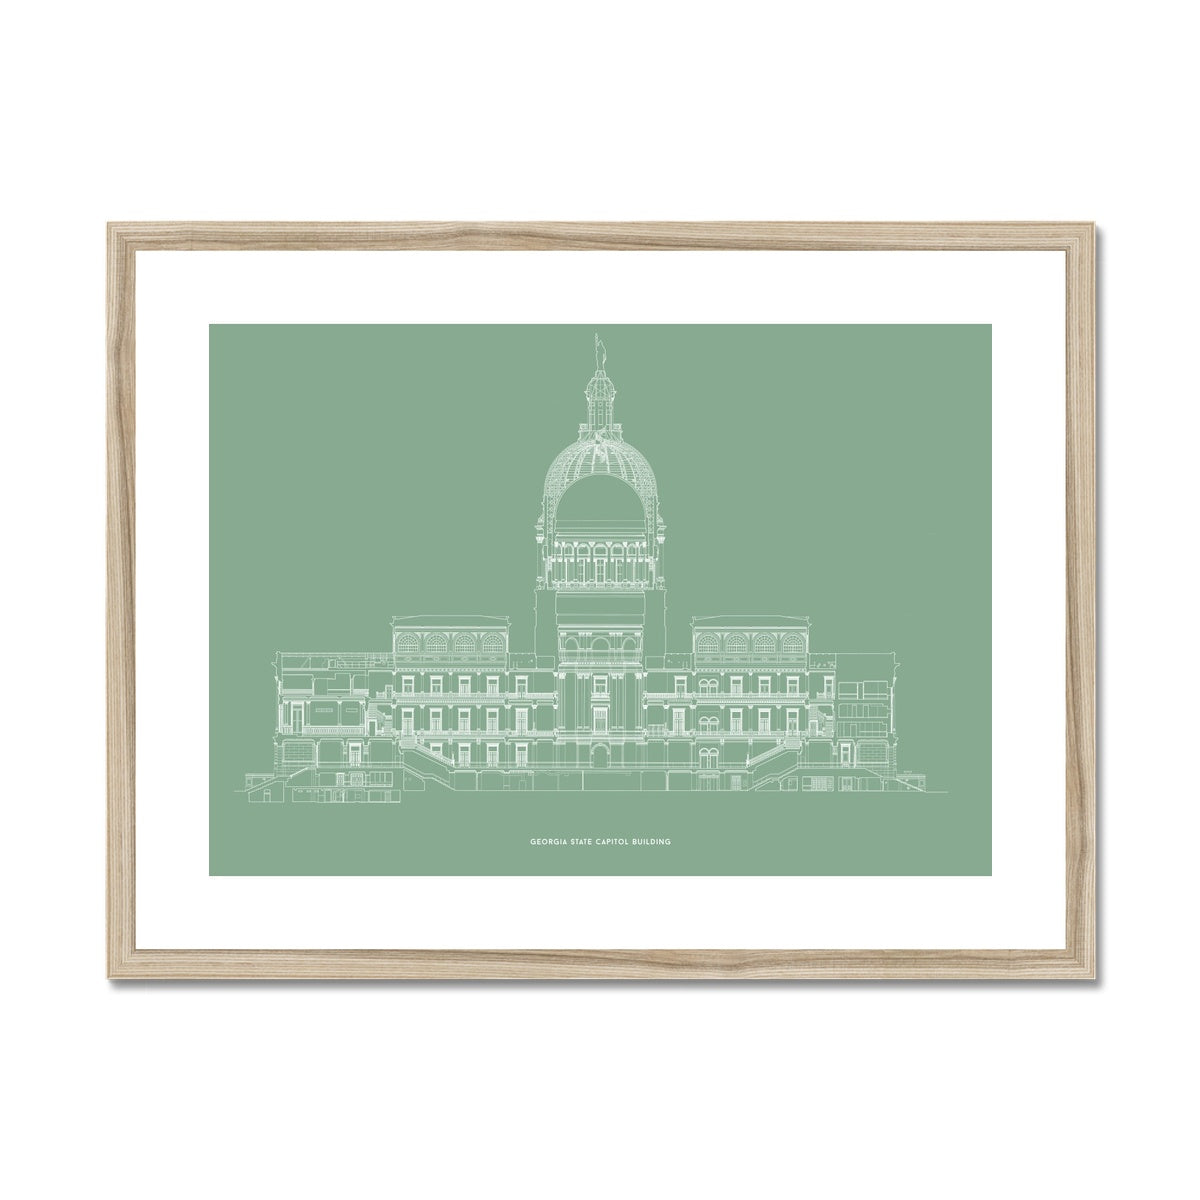 The Georgia State Capitol Building - West Elevation Cross Section - Green -  Framed & Mounted Print